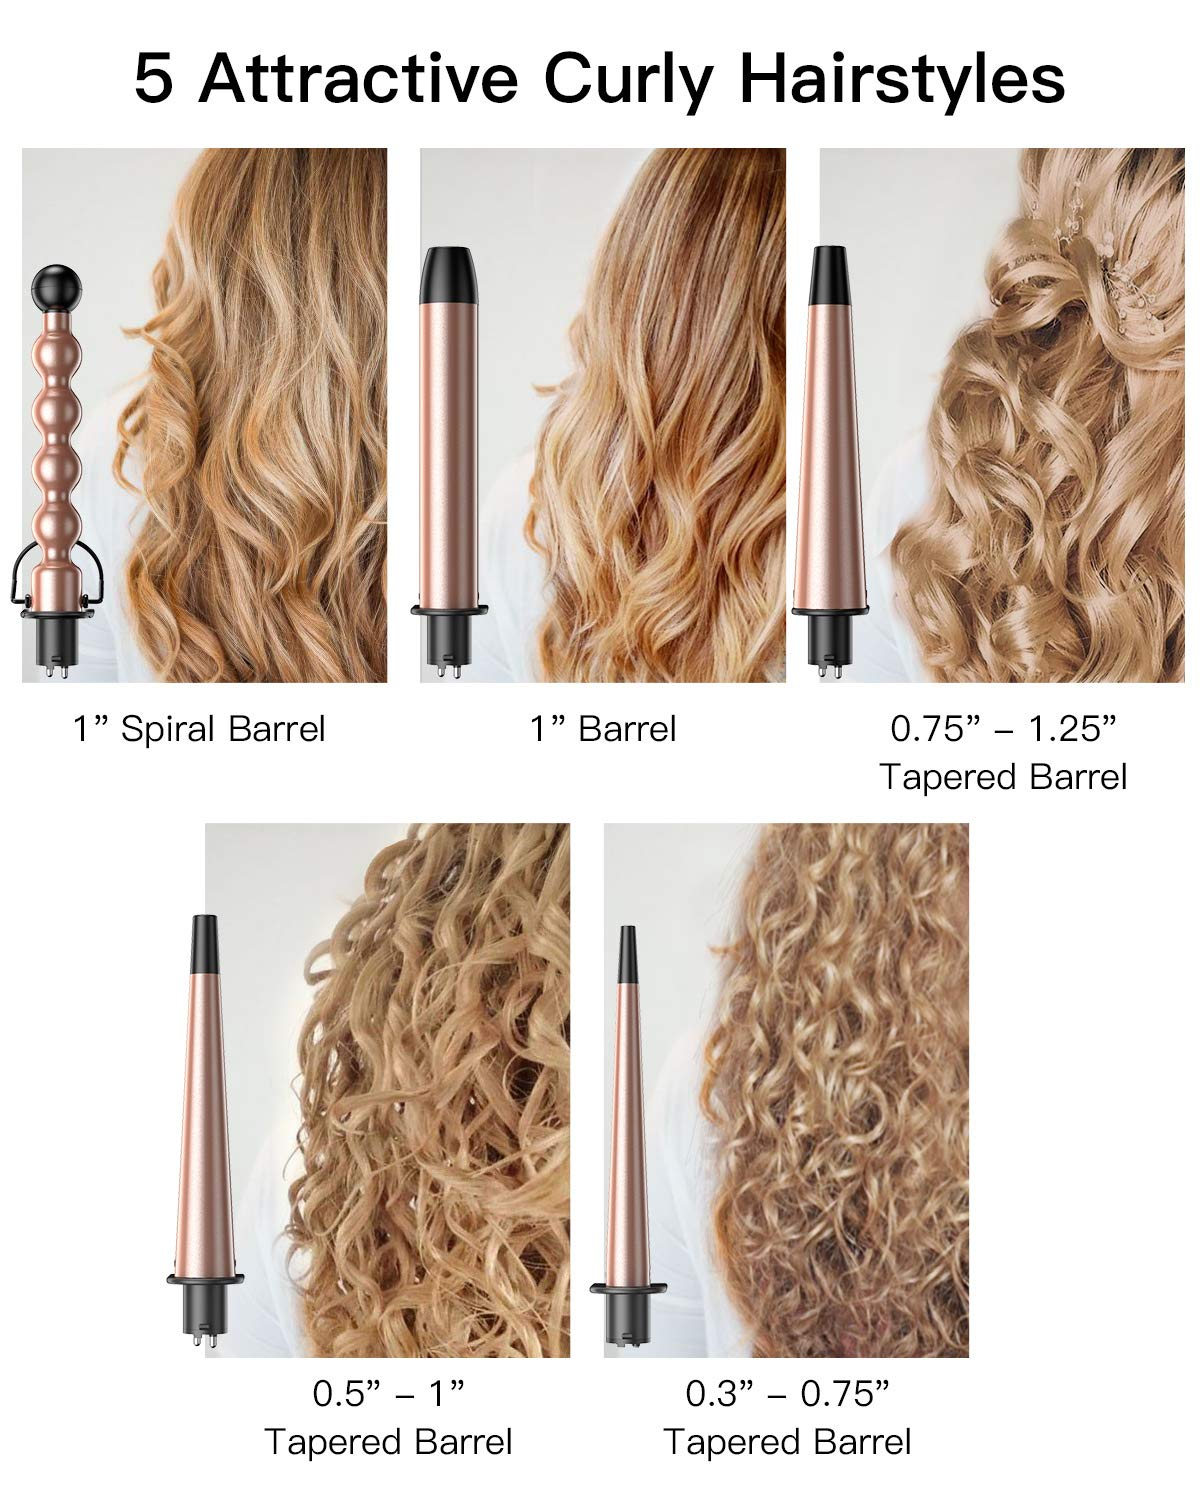 BESTOPE Curling Iron Curling Wand Set 5 in 1 Interchangeable Ceramic Barrels results